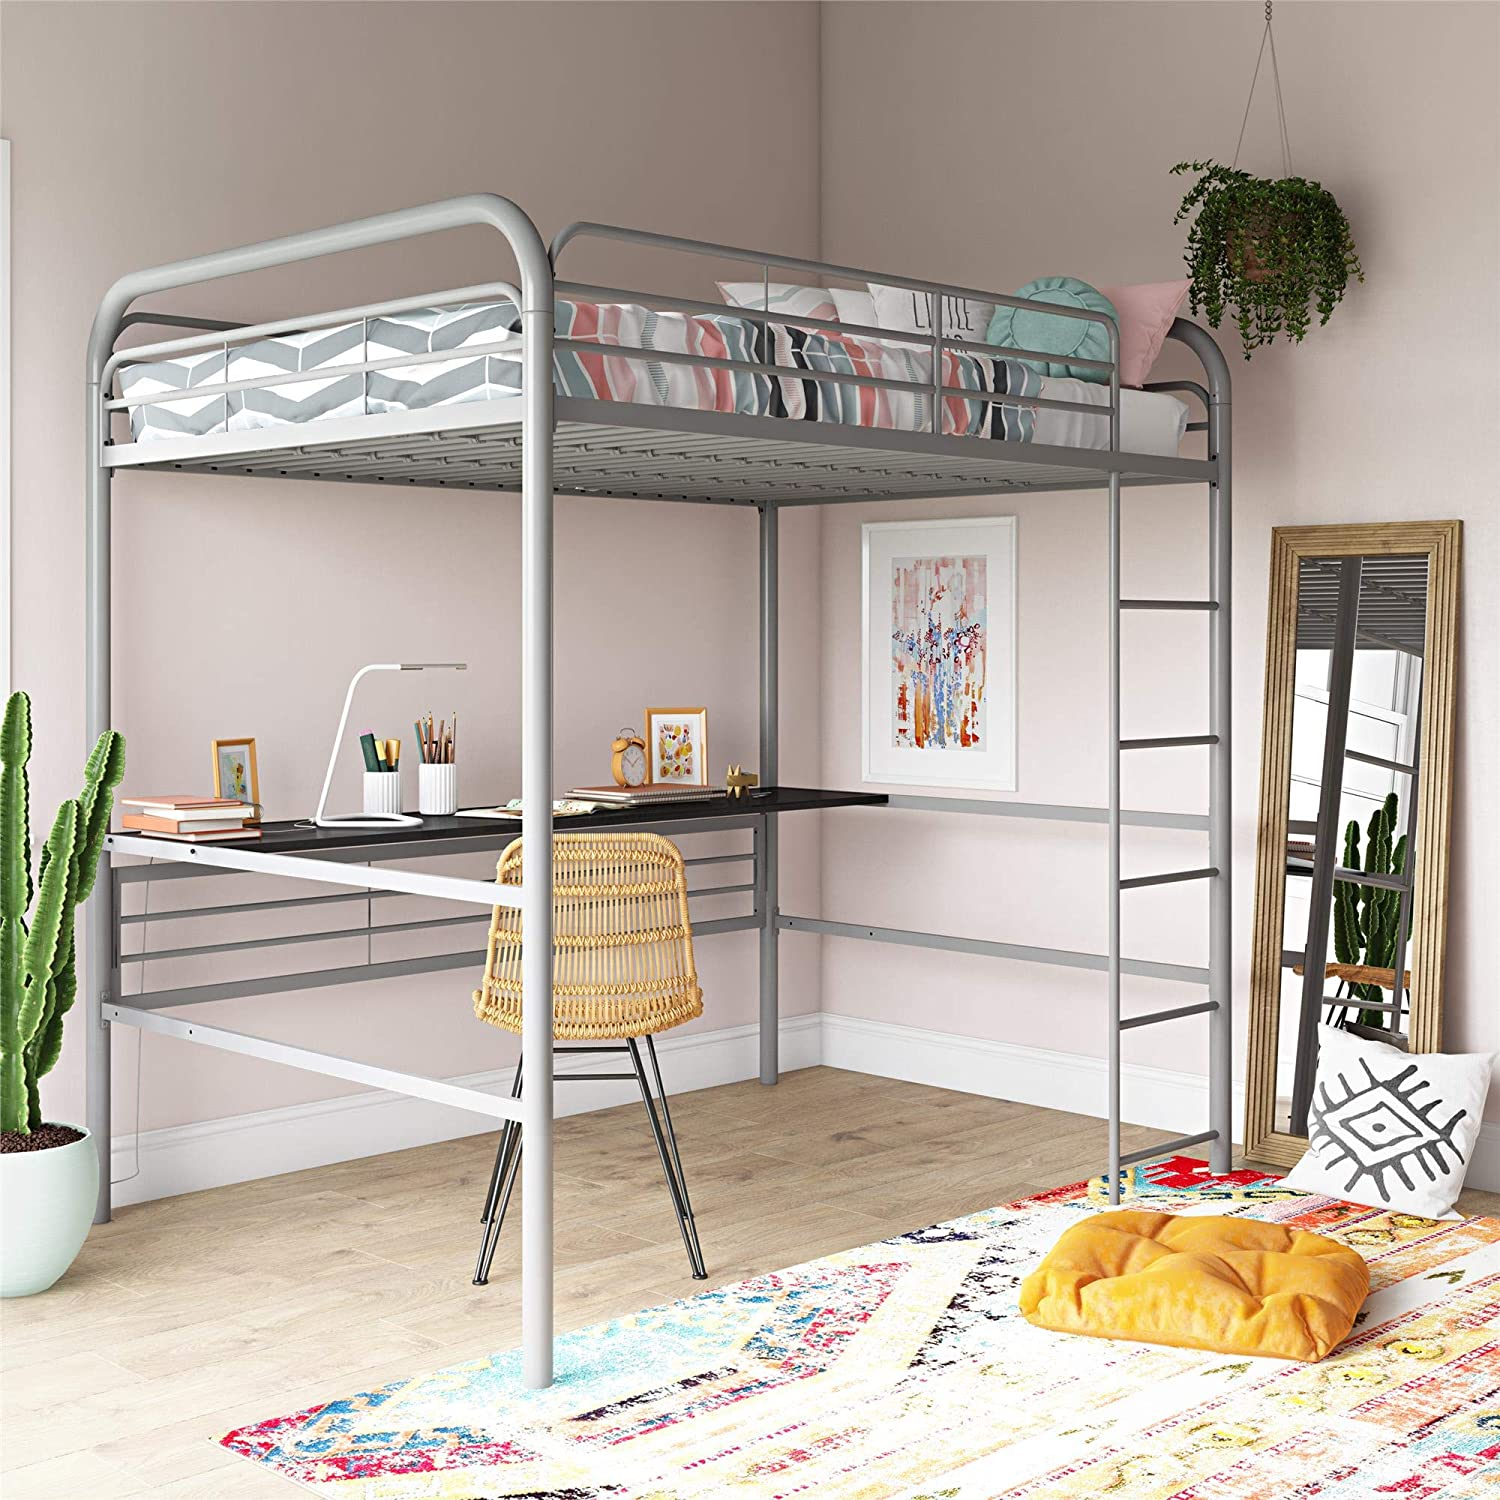 Amazon.com: DHP 4388429 Bed, Full Size Frame, Gray Metal ...